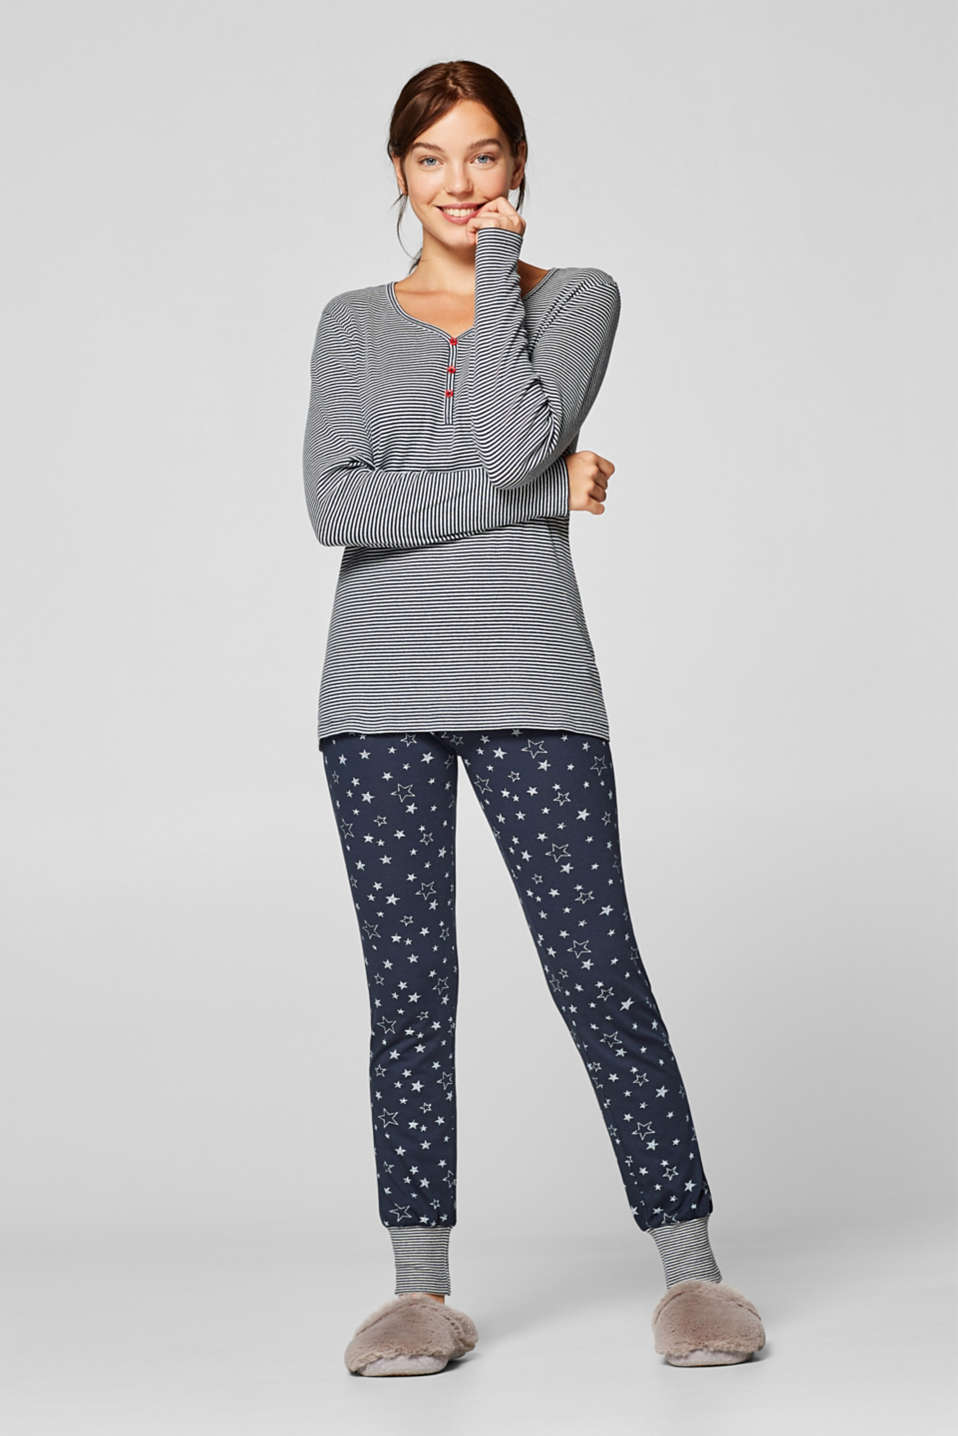 Esprit - Jersey pyjamas with stripes and stars